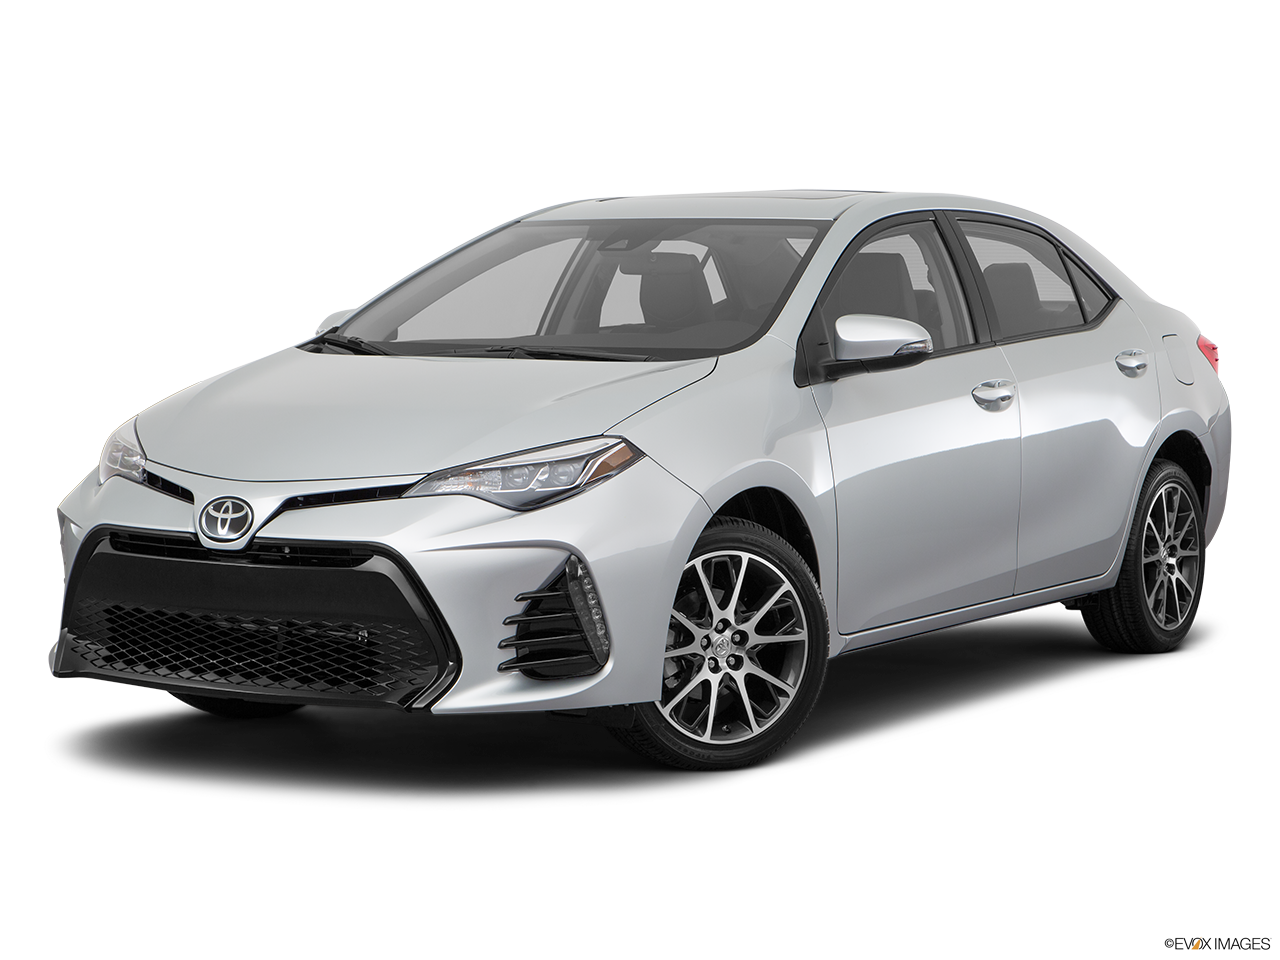 Test Drive A 2017 Toyota Corolla at Madera Toyota in Madera